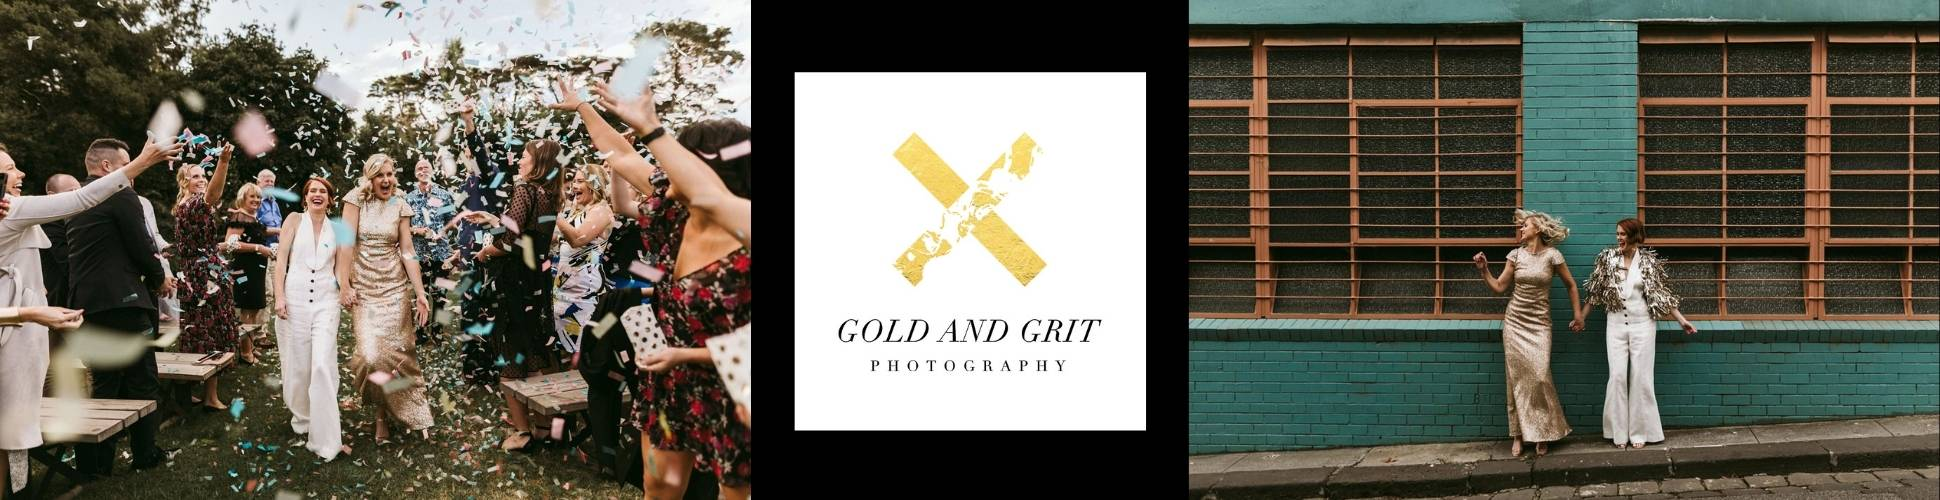 Gold & Grit Photography lesbian gay queer Melbourne Victoria wedding elopement photographer